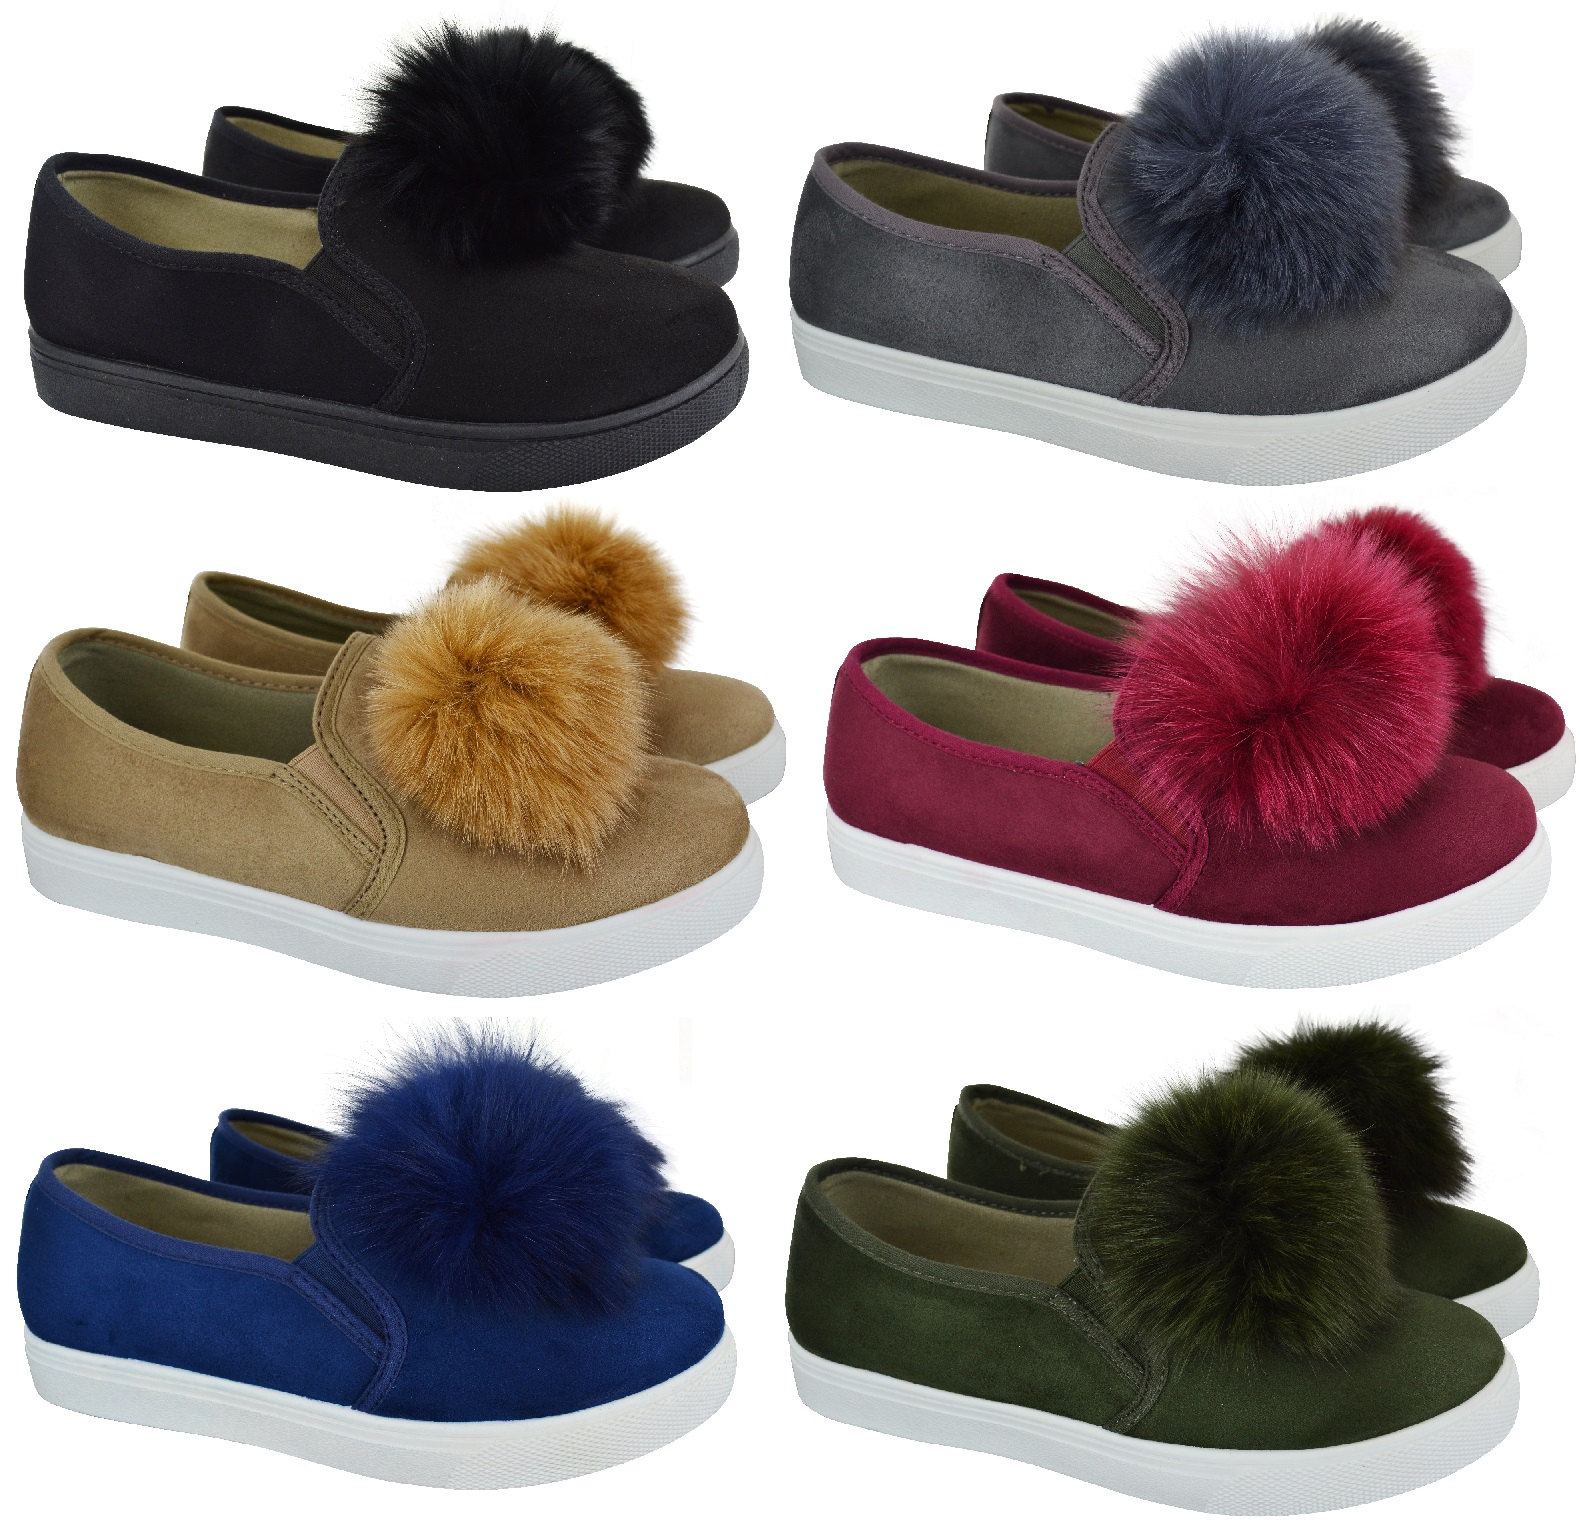 Sentinel WOMENS LADIES POM POM LOAFERS STYLE SUEDE TRAINERS PUMPS FLAT HEEL  SHOES SIZE d3c961190